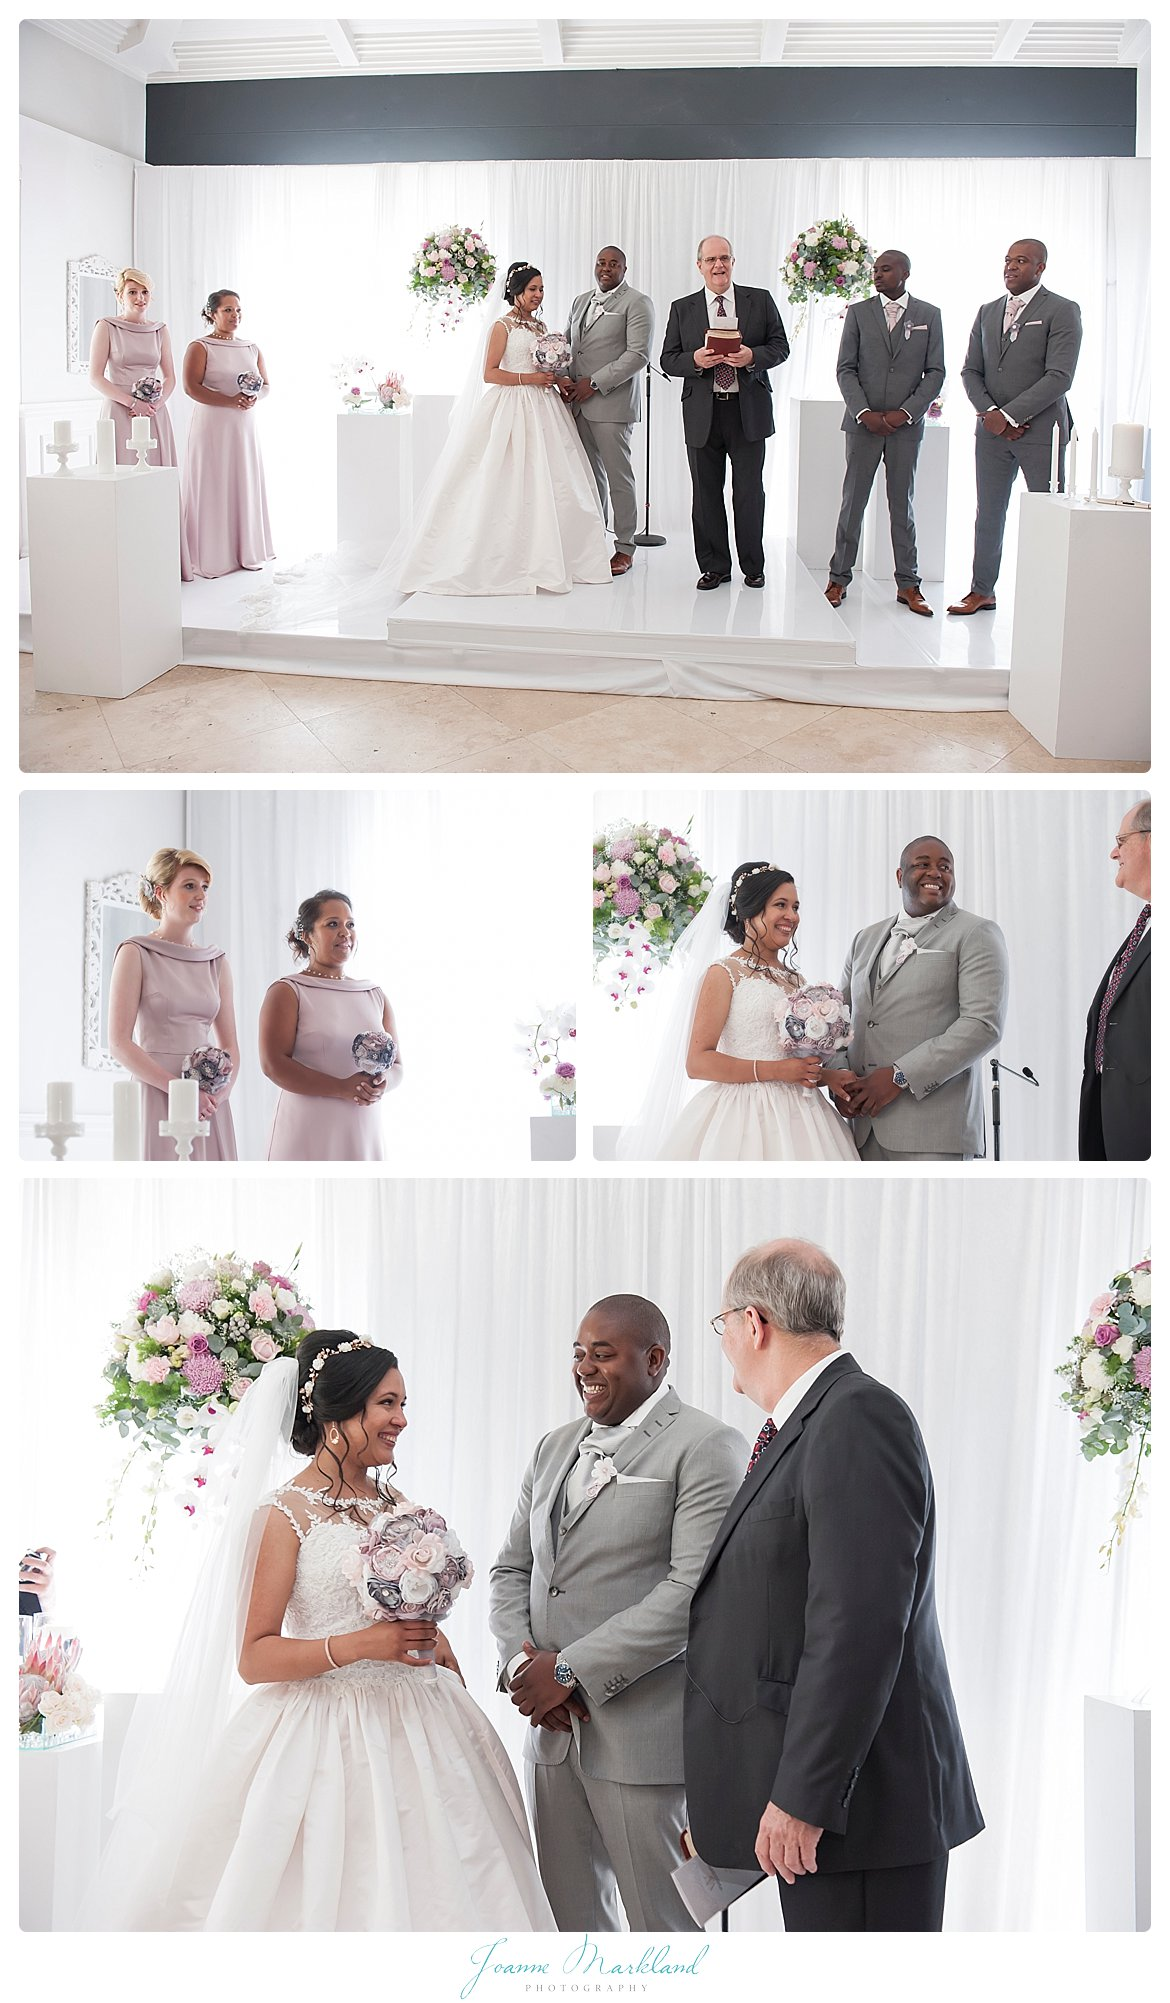 Val_de_vie_wedding_joanne_markland_photography_paarl-027